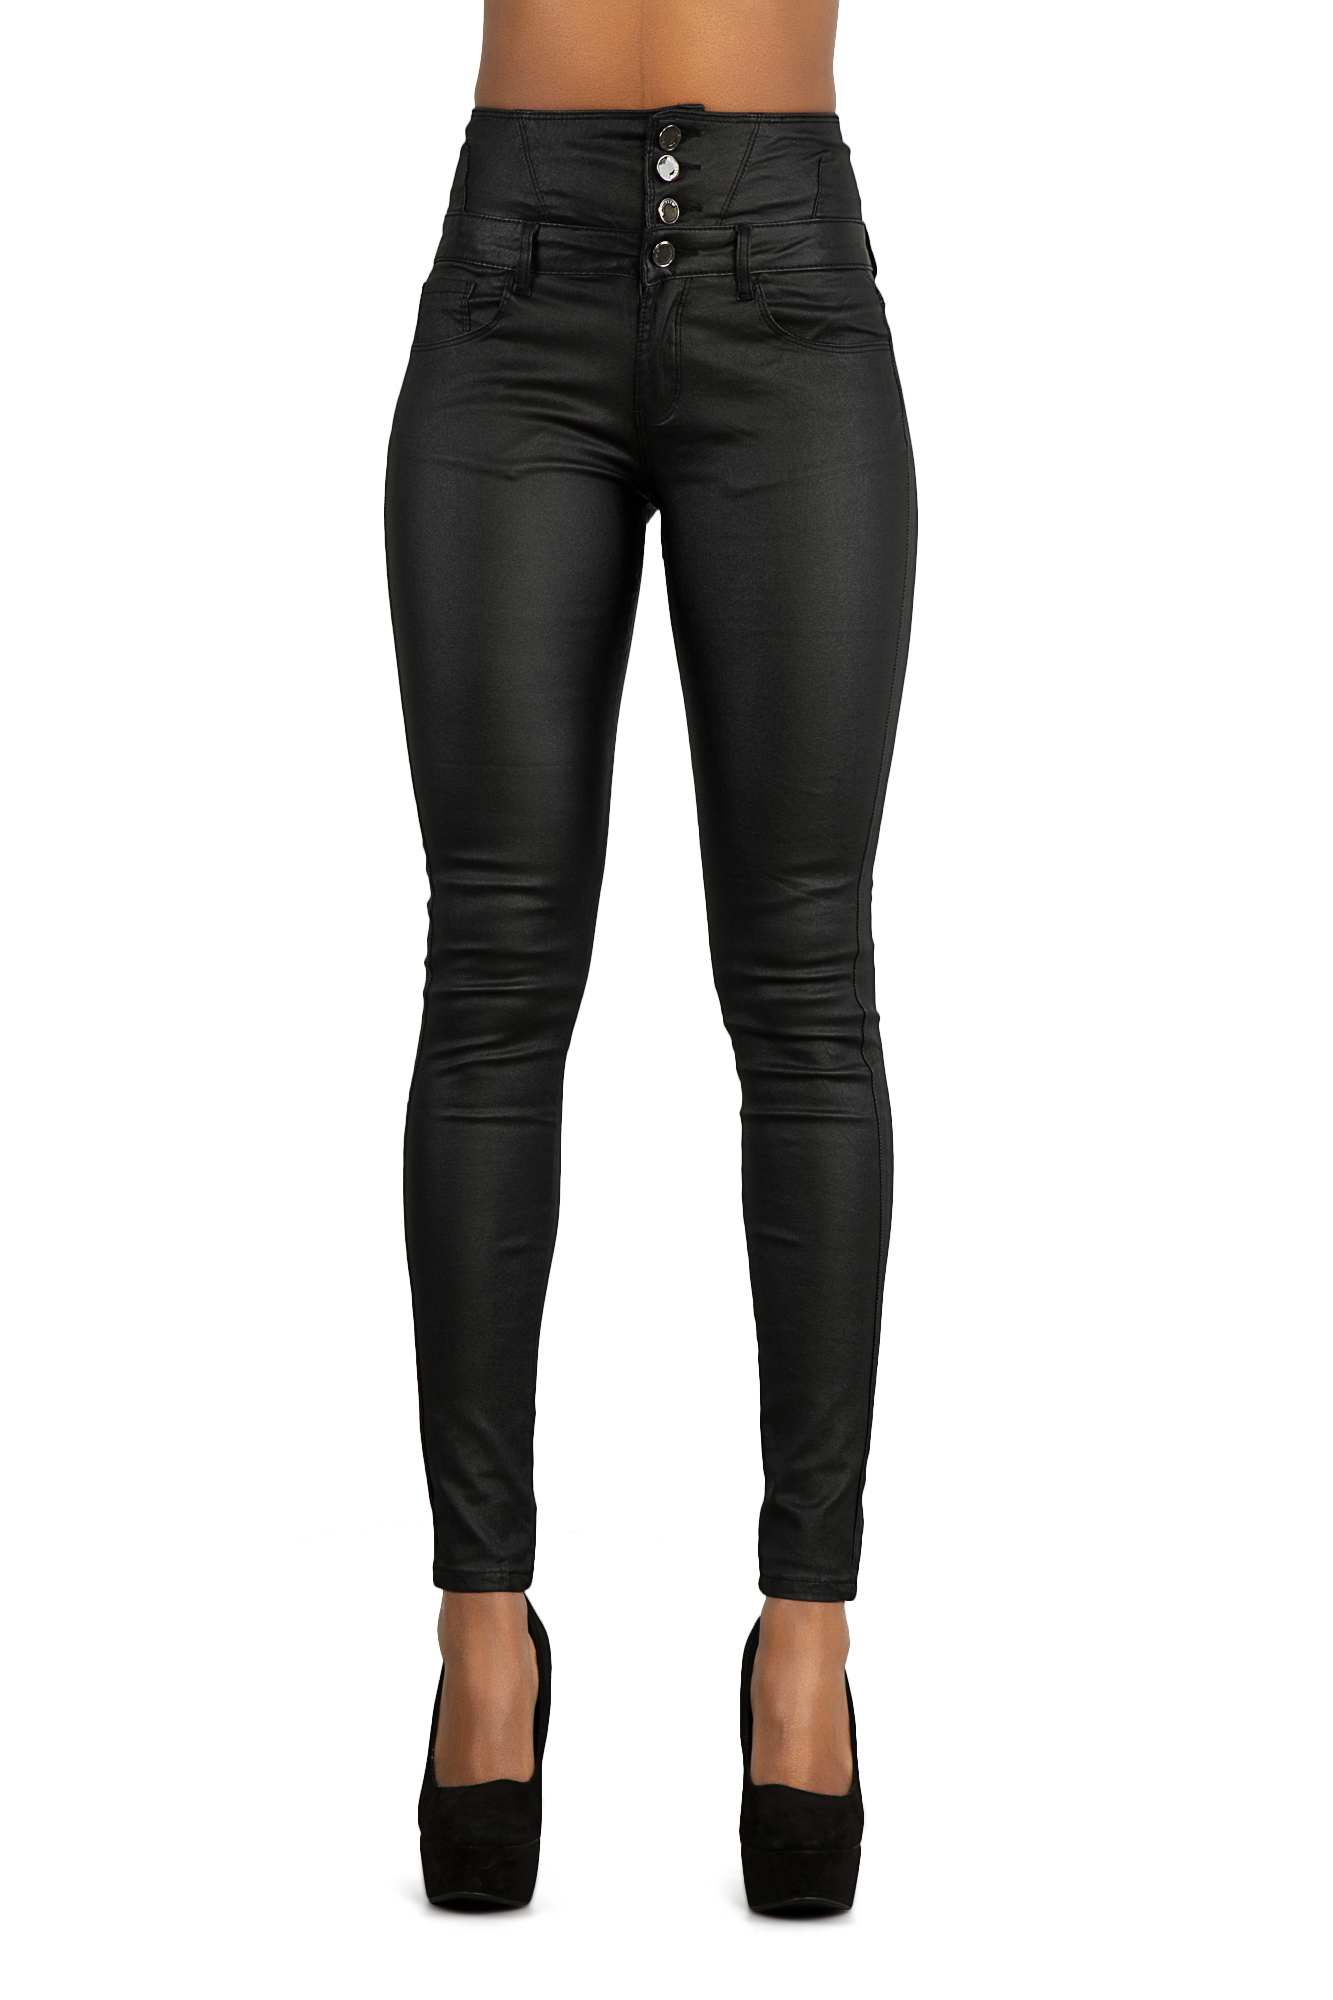 Women's Utility Slim Crop Jeans by White House Black Market, Black, Size 4 - Regular. The runways have spoken. And when it comes to denim, the more cropped the chicer. We finished this style with gleaming hardware for luxe contrast.